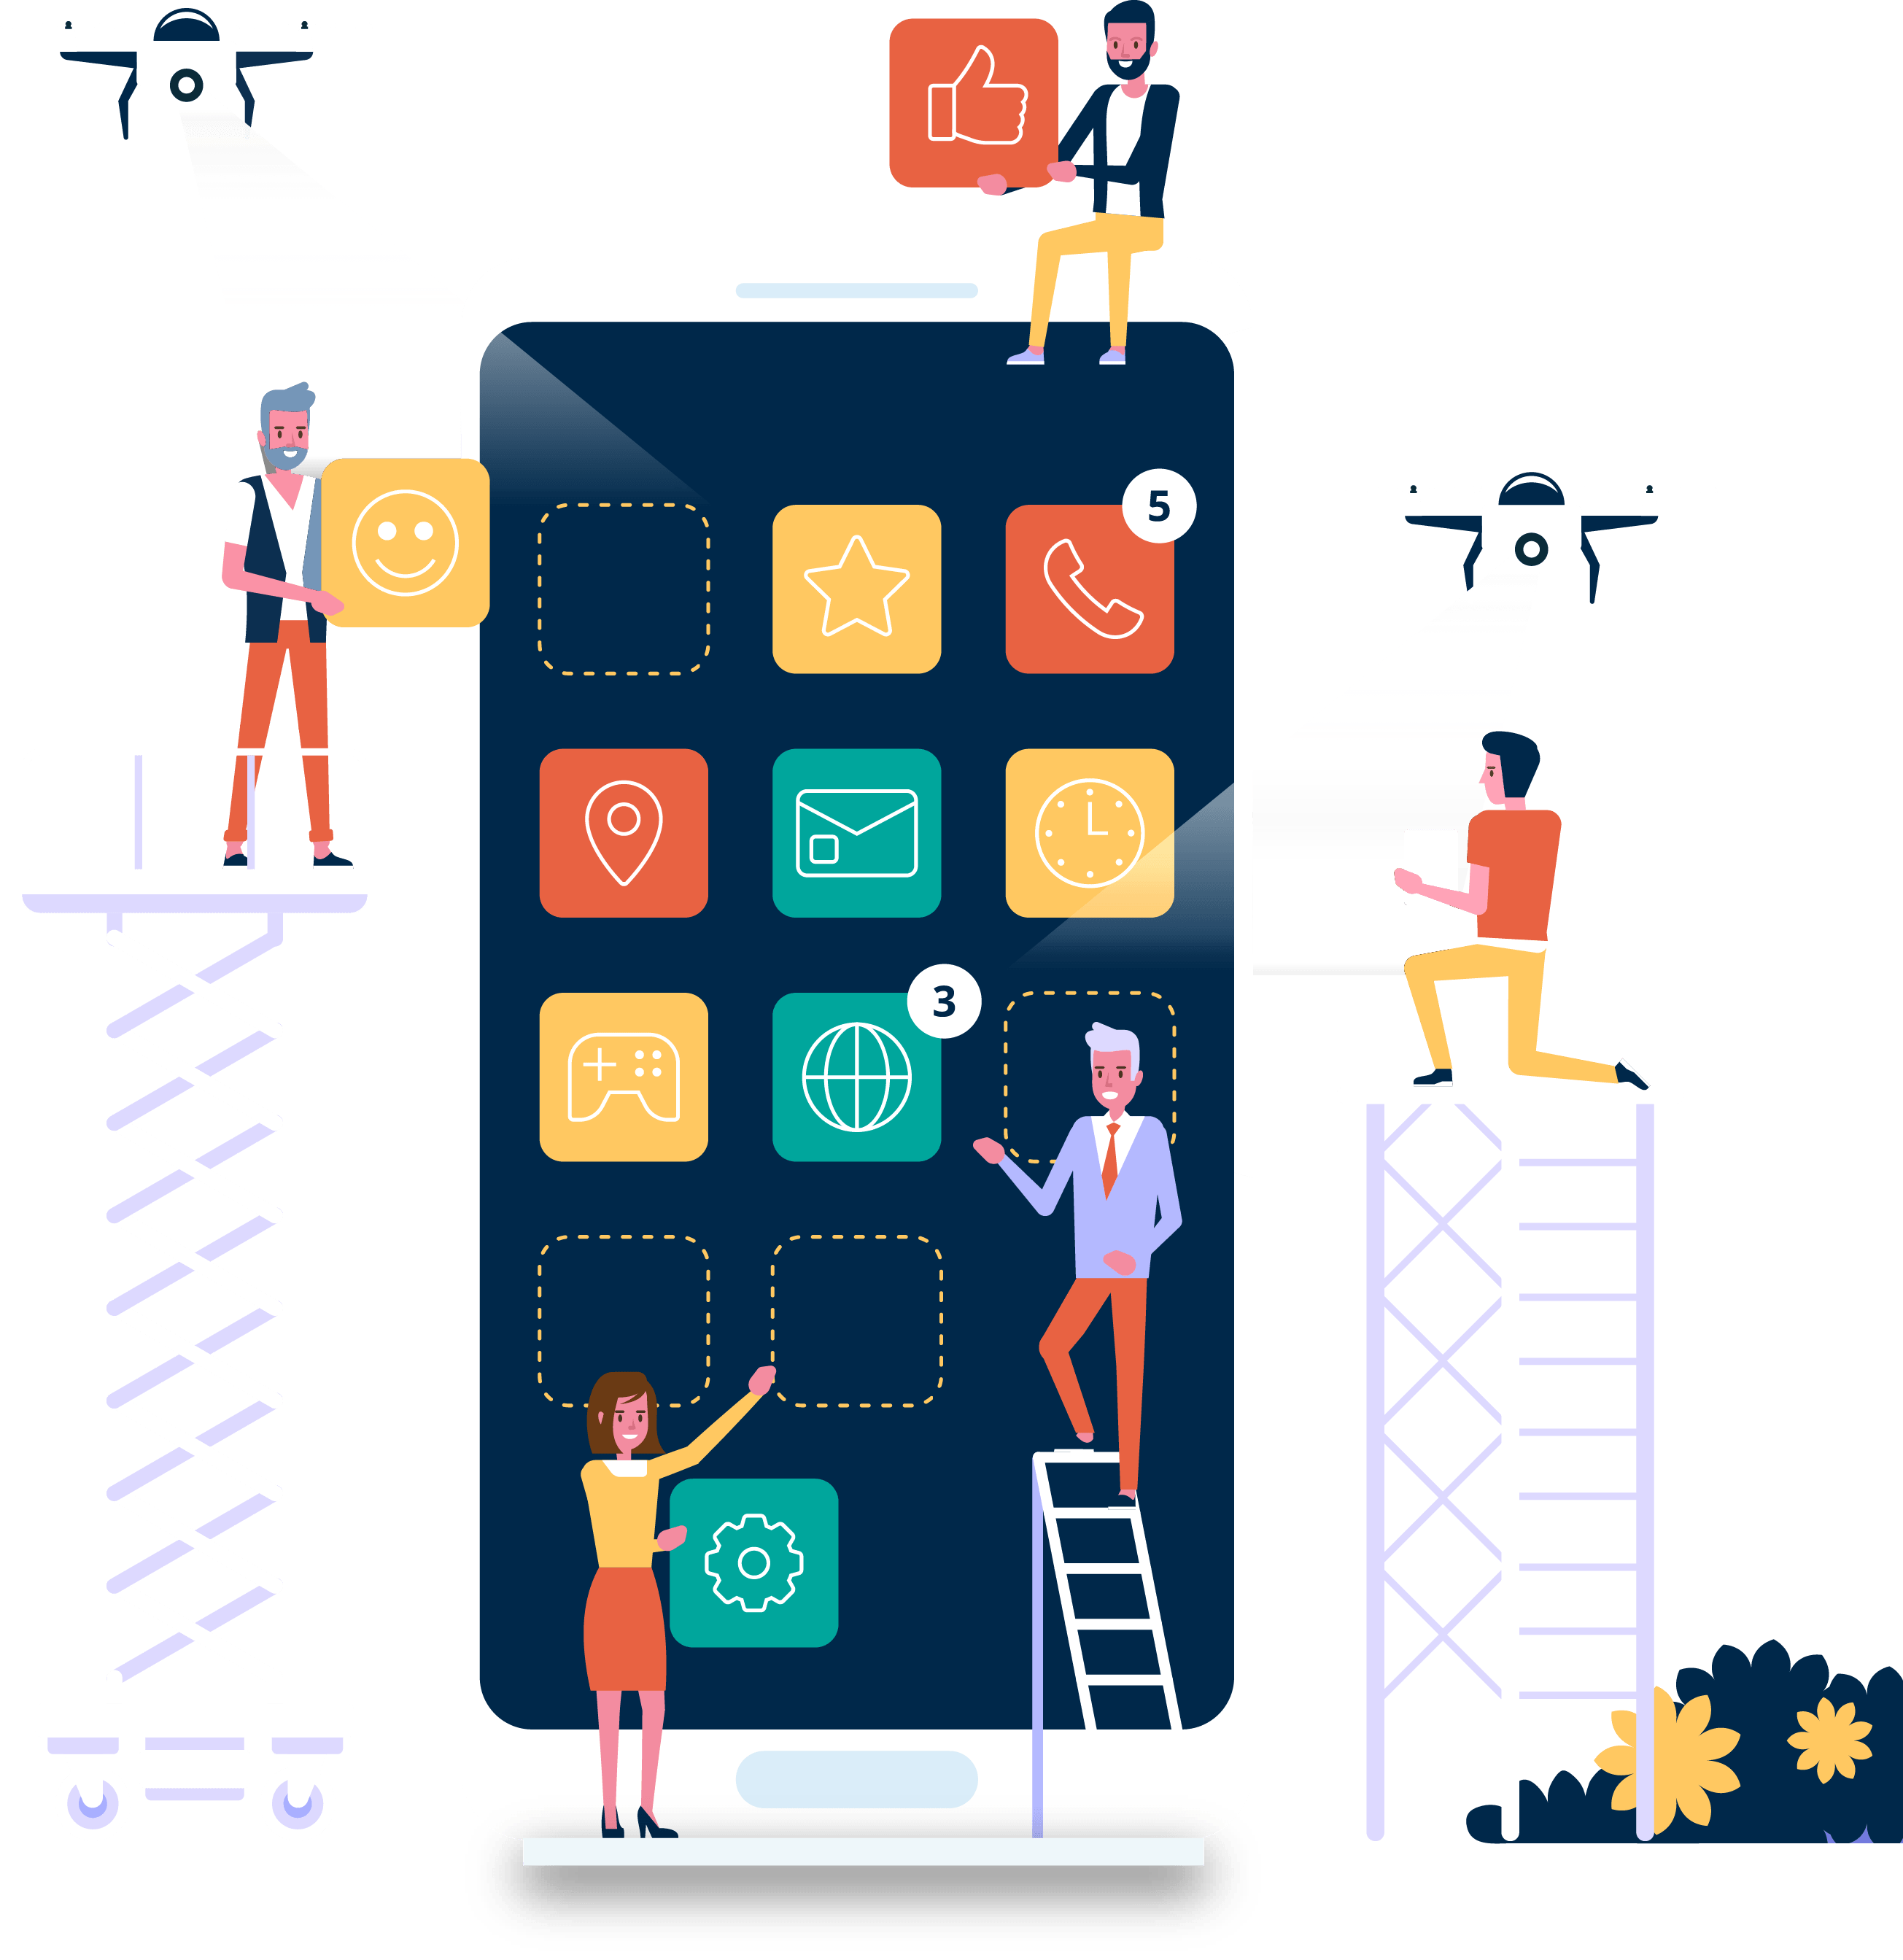 What Are The Benefits of Having a Mobile App?